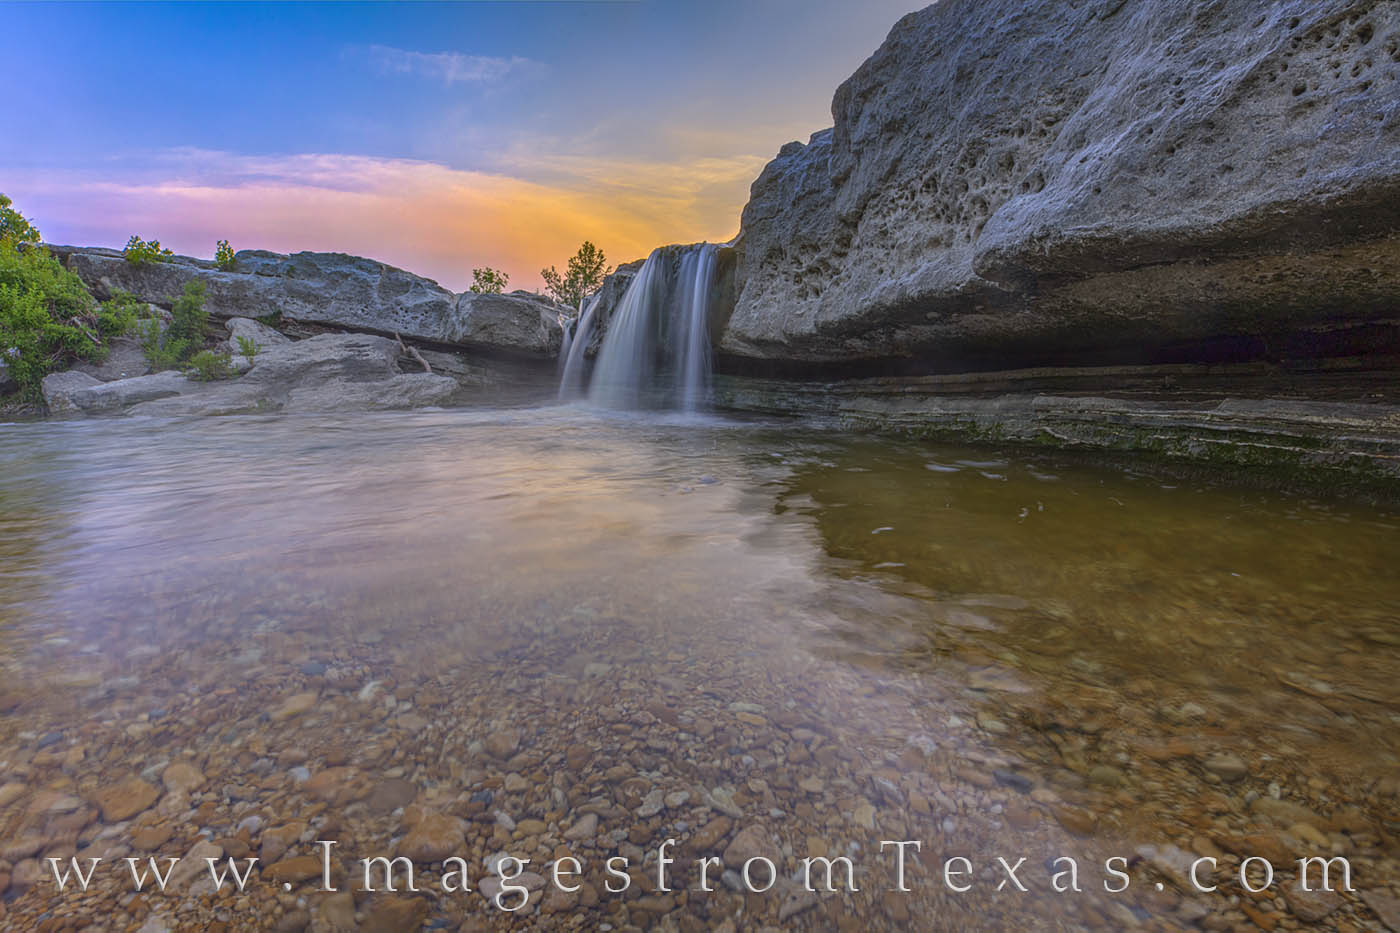 lower falls, mckinney falls, austin, texas state parks, summer, sunset, evening, waterfall, cascade, photo